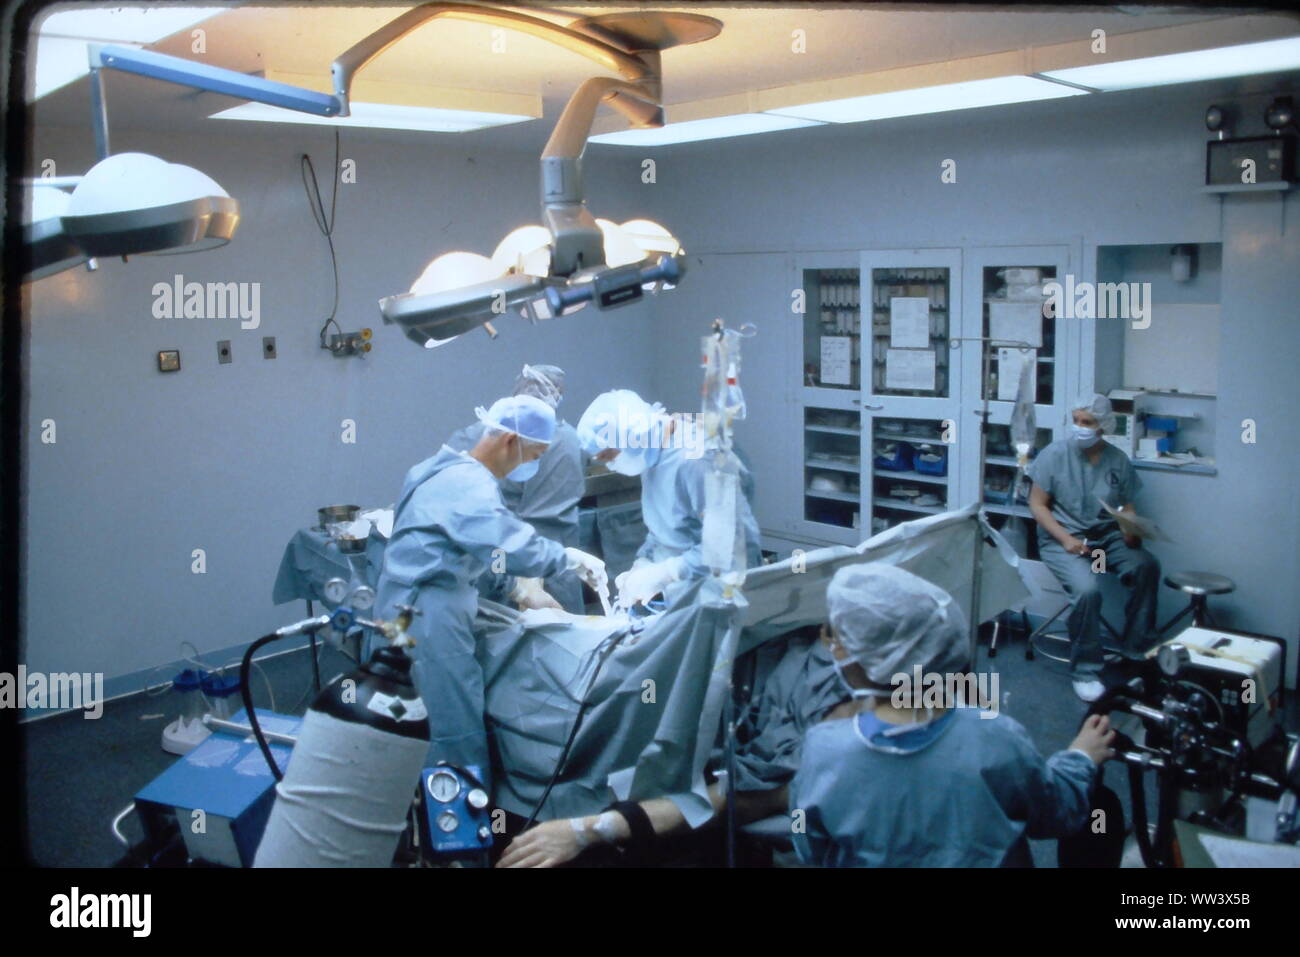 Surgeons performing knee replacement  in sterile surgical scene. Stock Photo